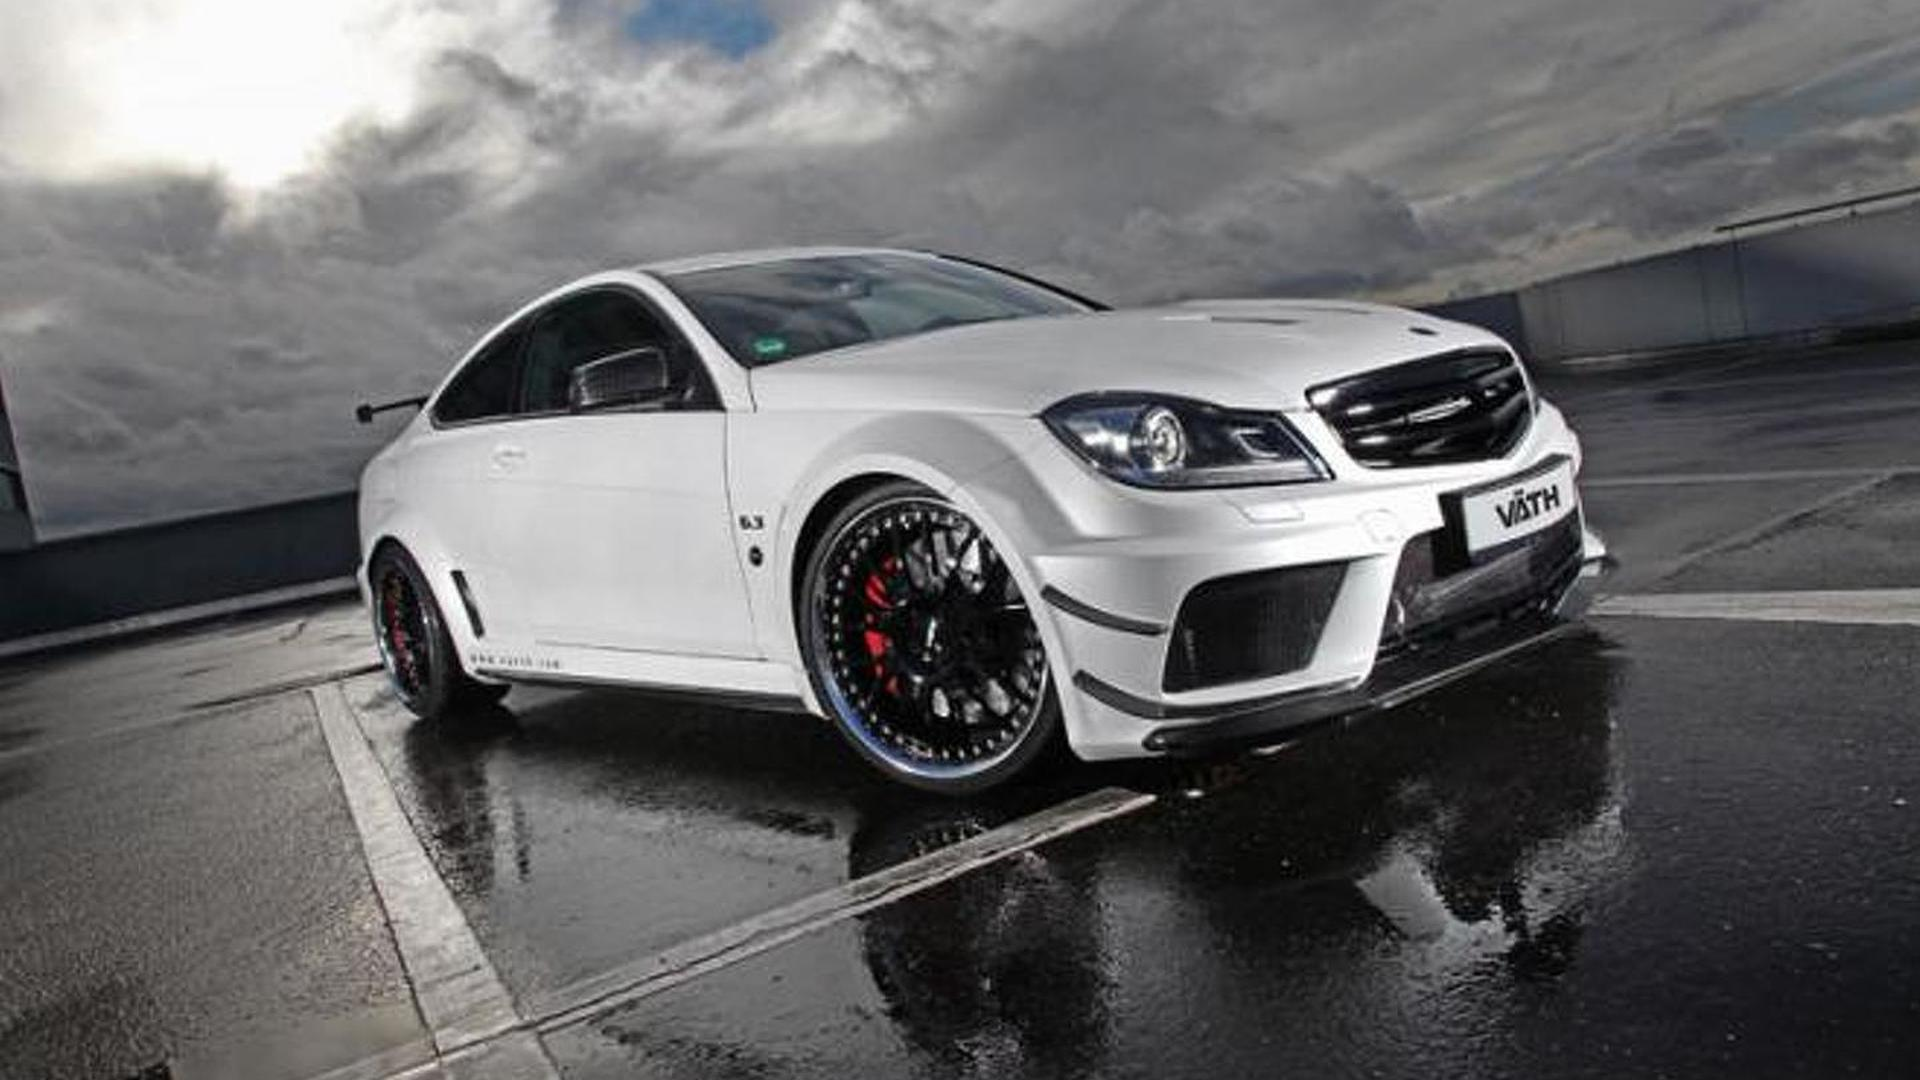 vth upgrades mercedes benz c63 amg coupe black series to 756 hp